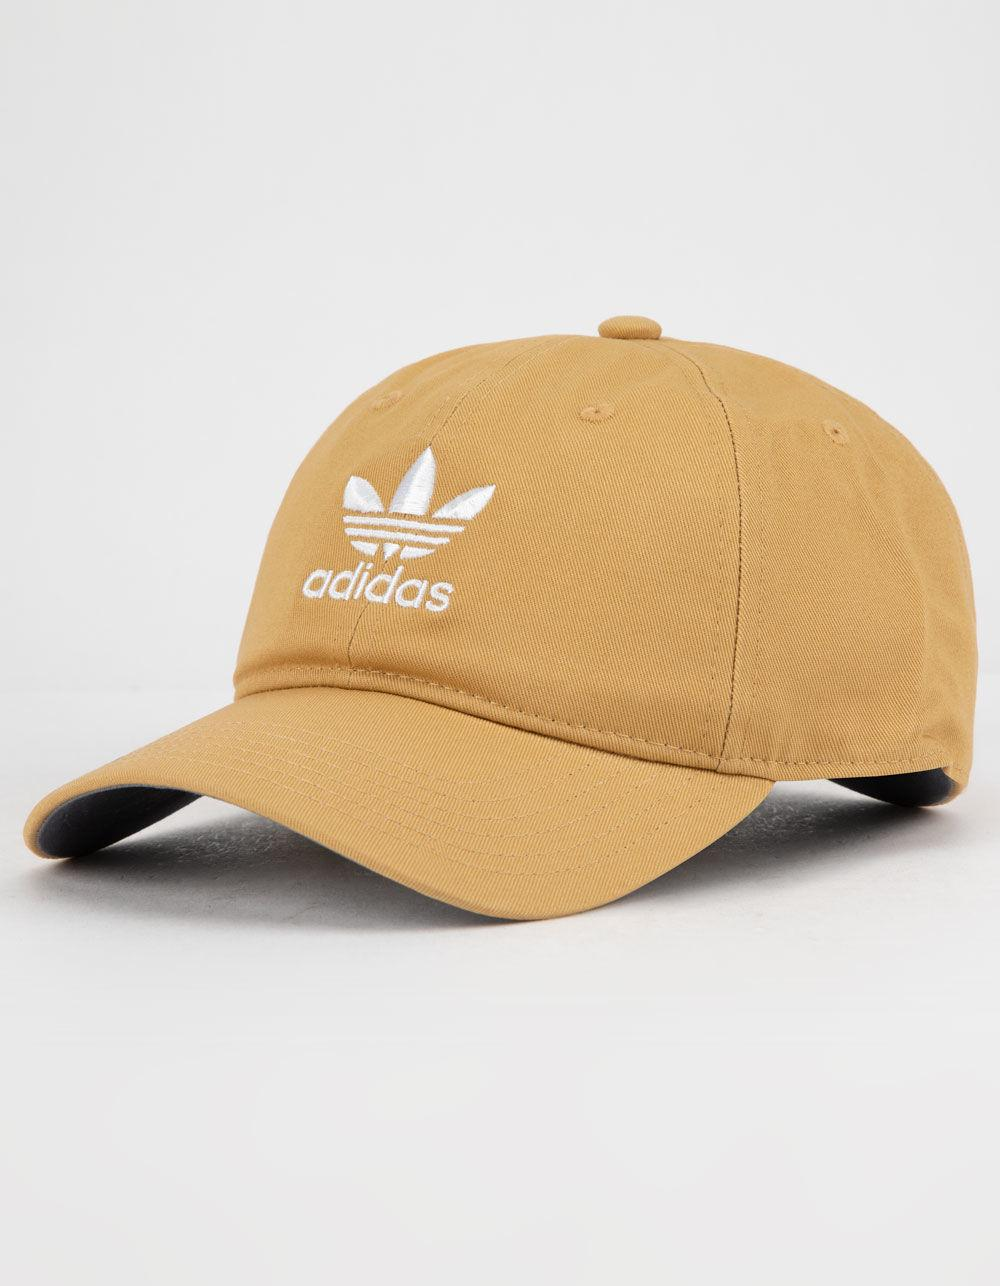 eeb1678825a Adidas - Natural Originals Relaxed Raw Sand Mens Strapback Hat for Men -  Lyst. View fullscreen